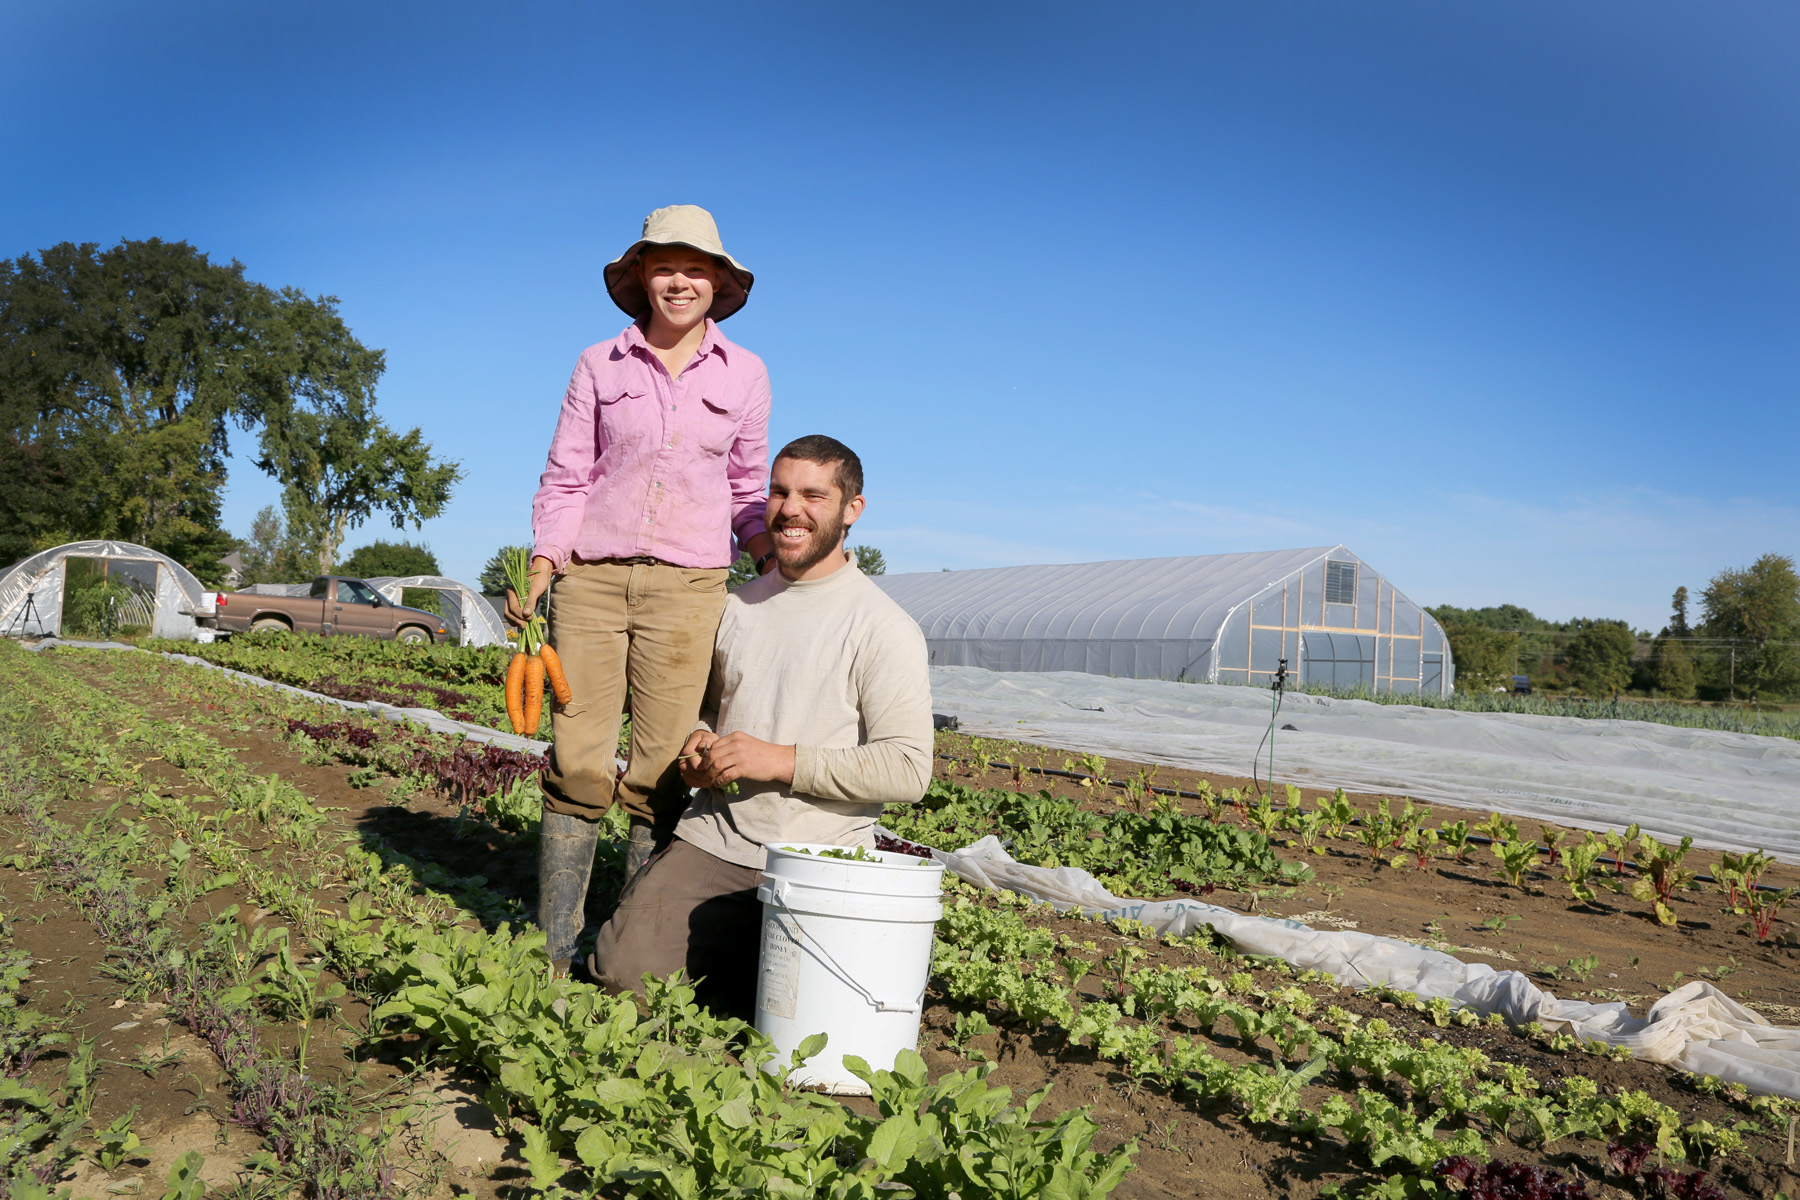 Kelsey Herrington and Dominic Pascarelli, Farmer-Owners of Two Farmers Farm.